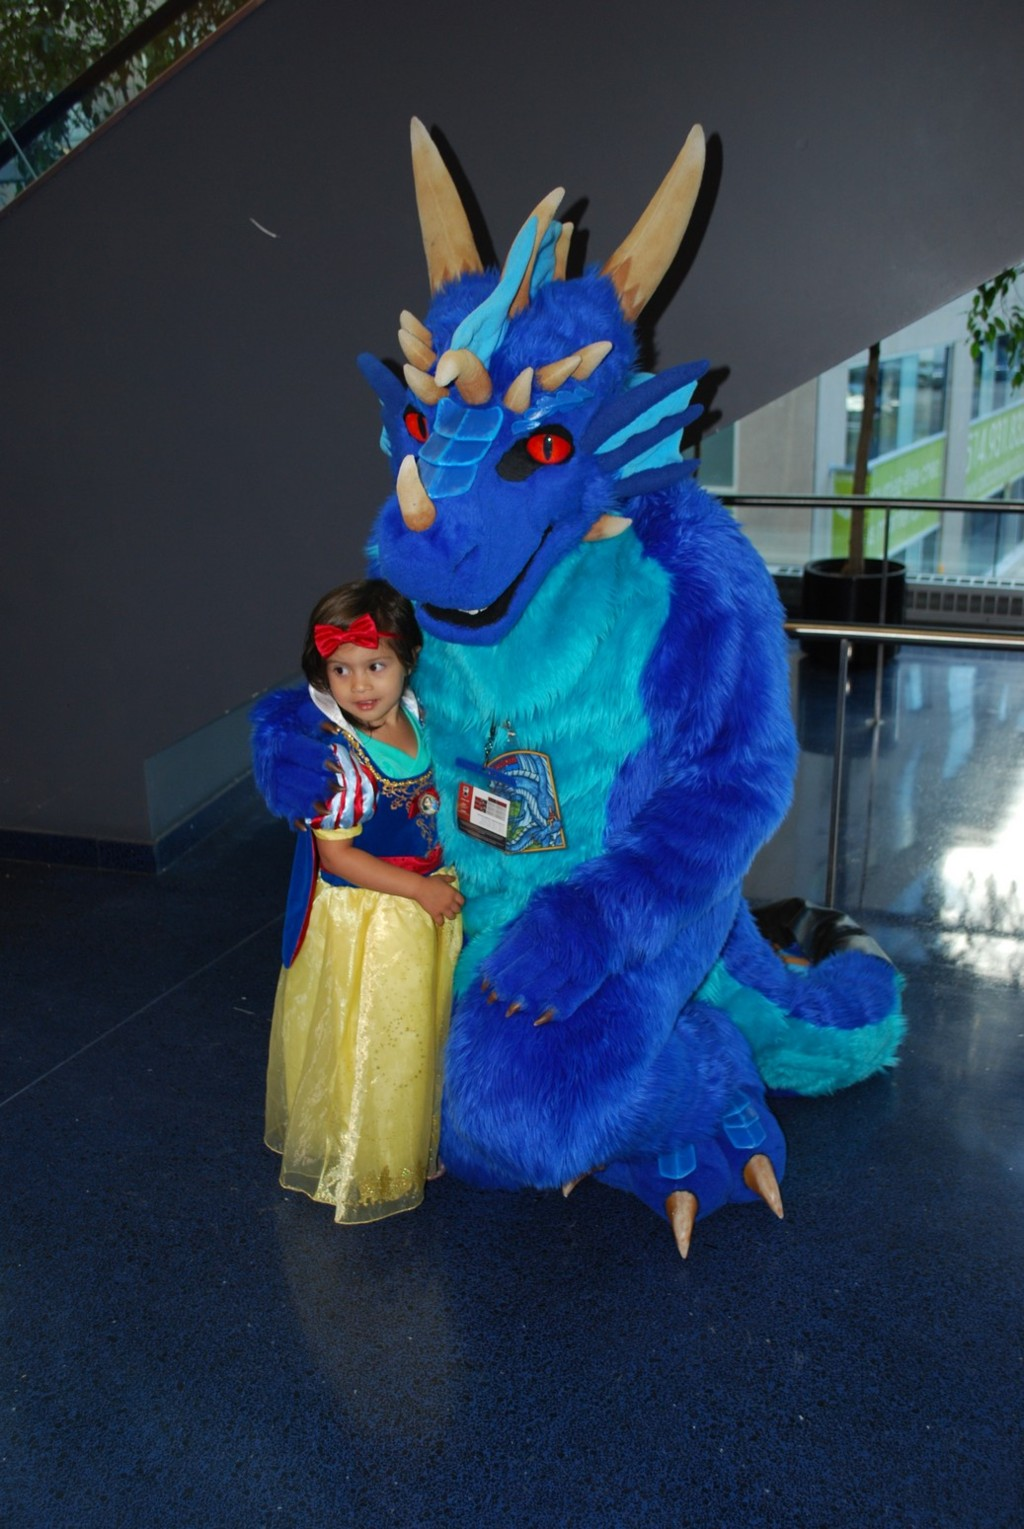 Snow White and the Dragon